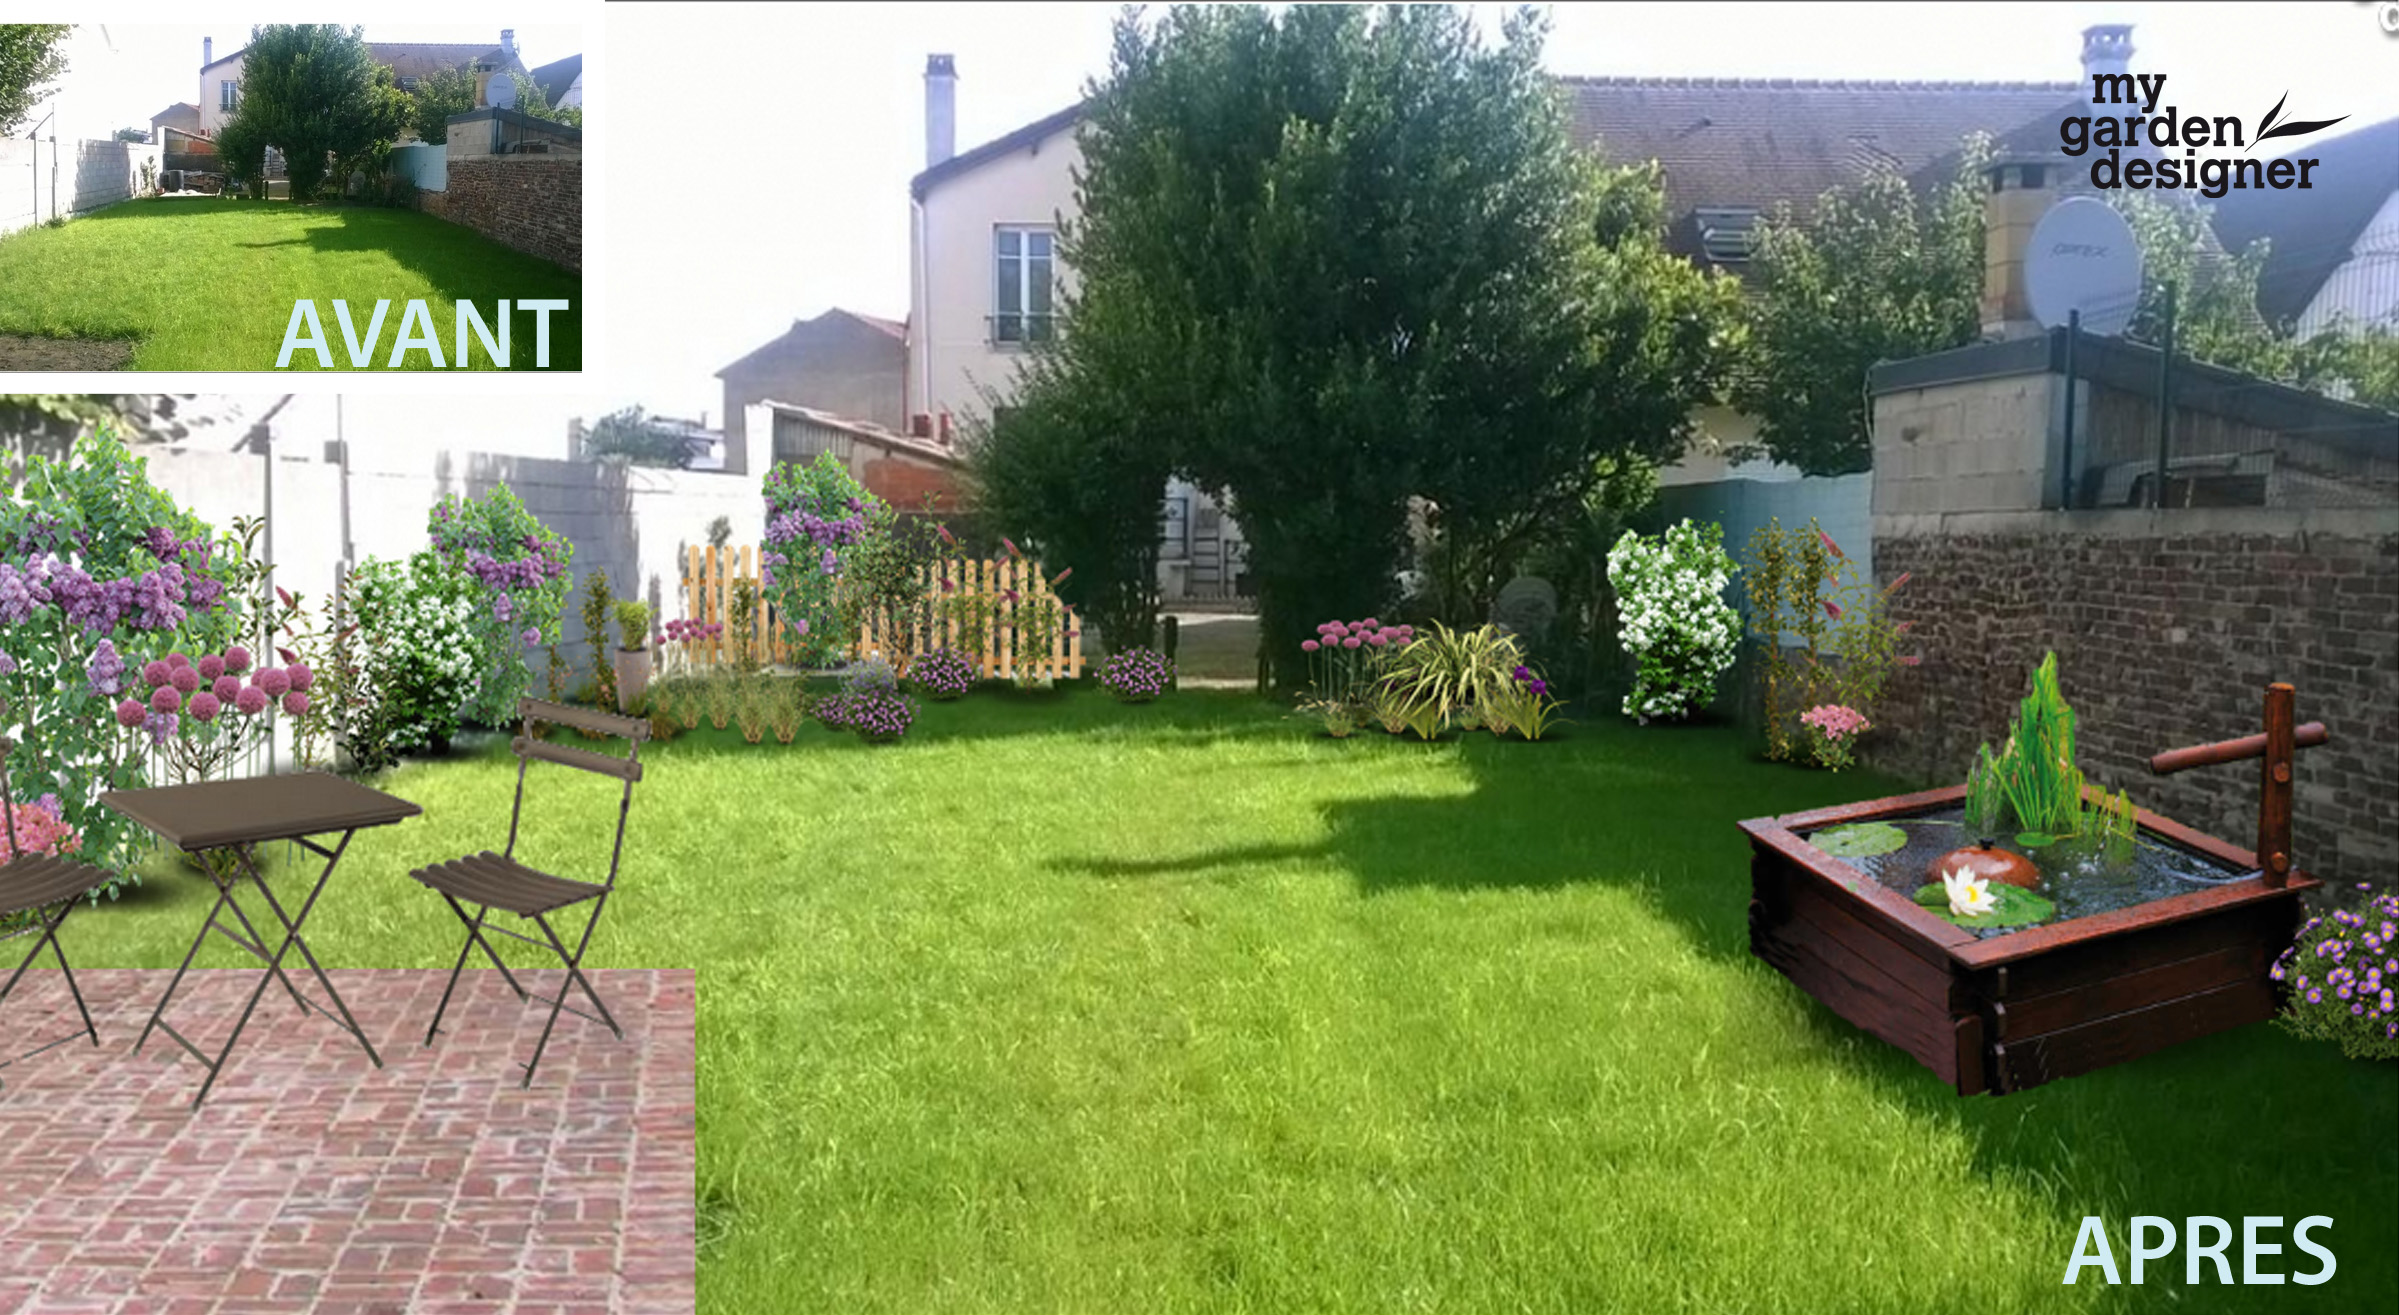 Am nager un jardin carr en ile de france monjardin for France jardin